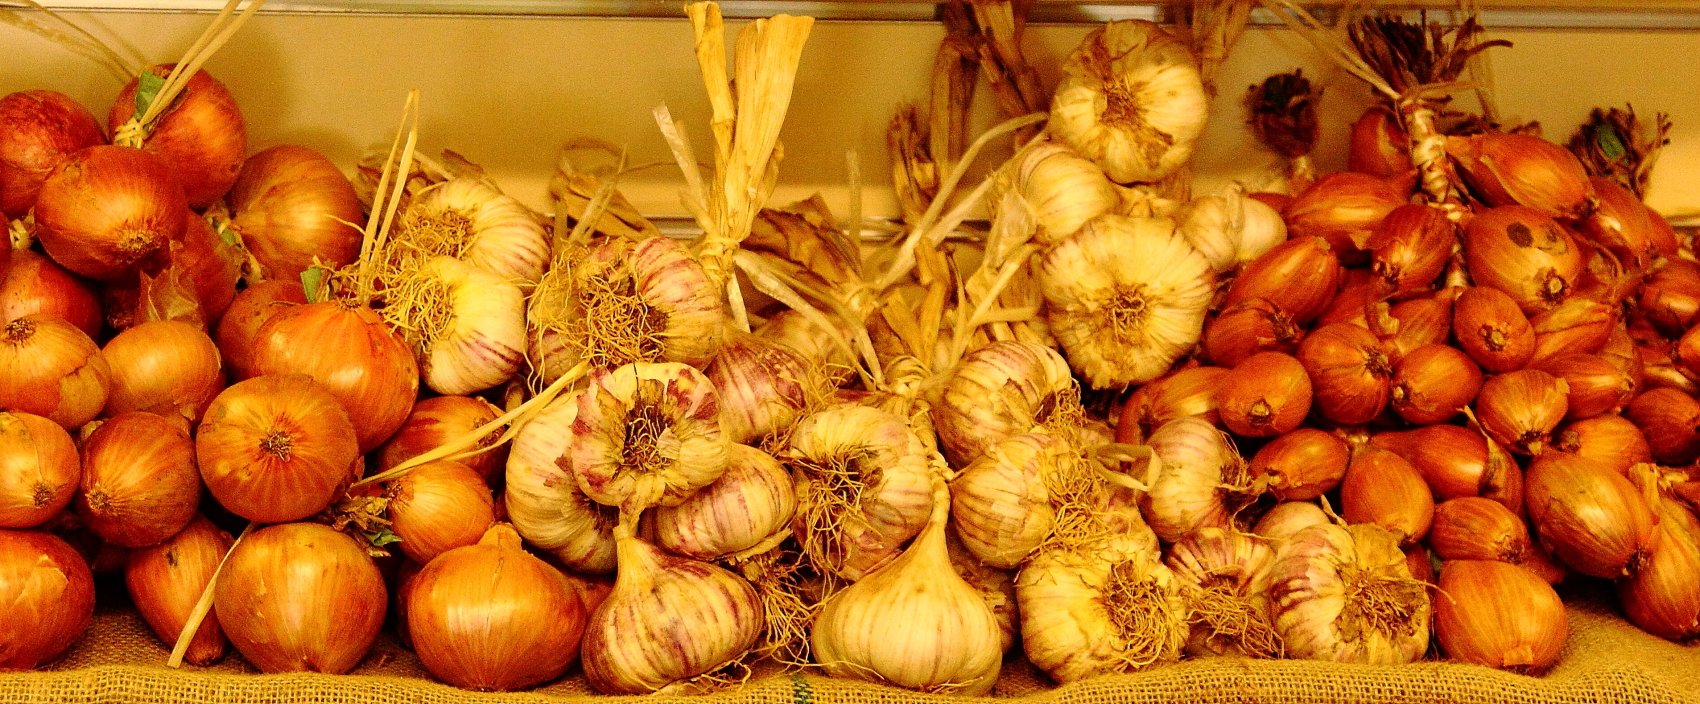 Roscoff Onions and Garlic